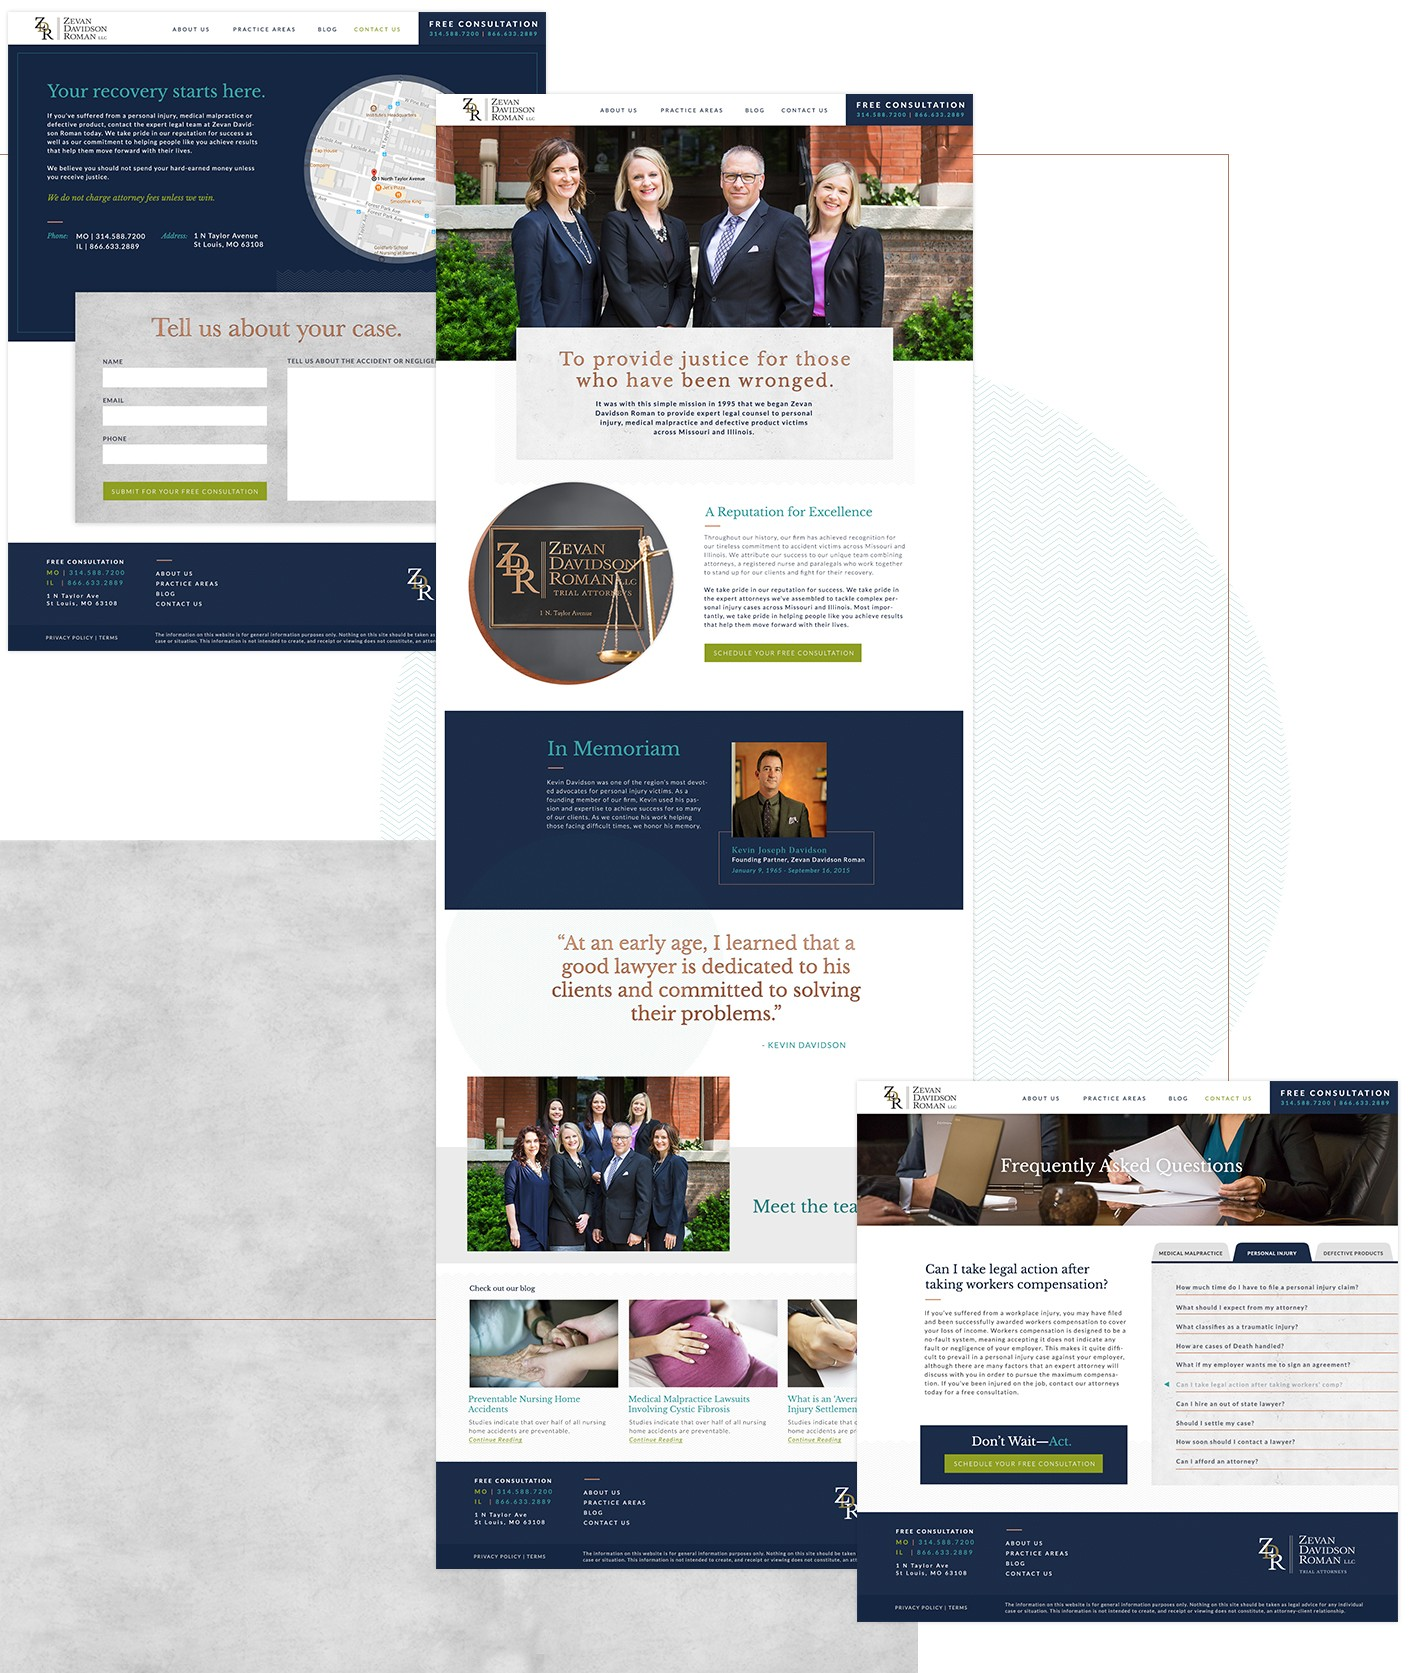 Our calls to action and lead qualification webforms were well considered for the new Zevan Davidson Roman legal website.